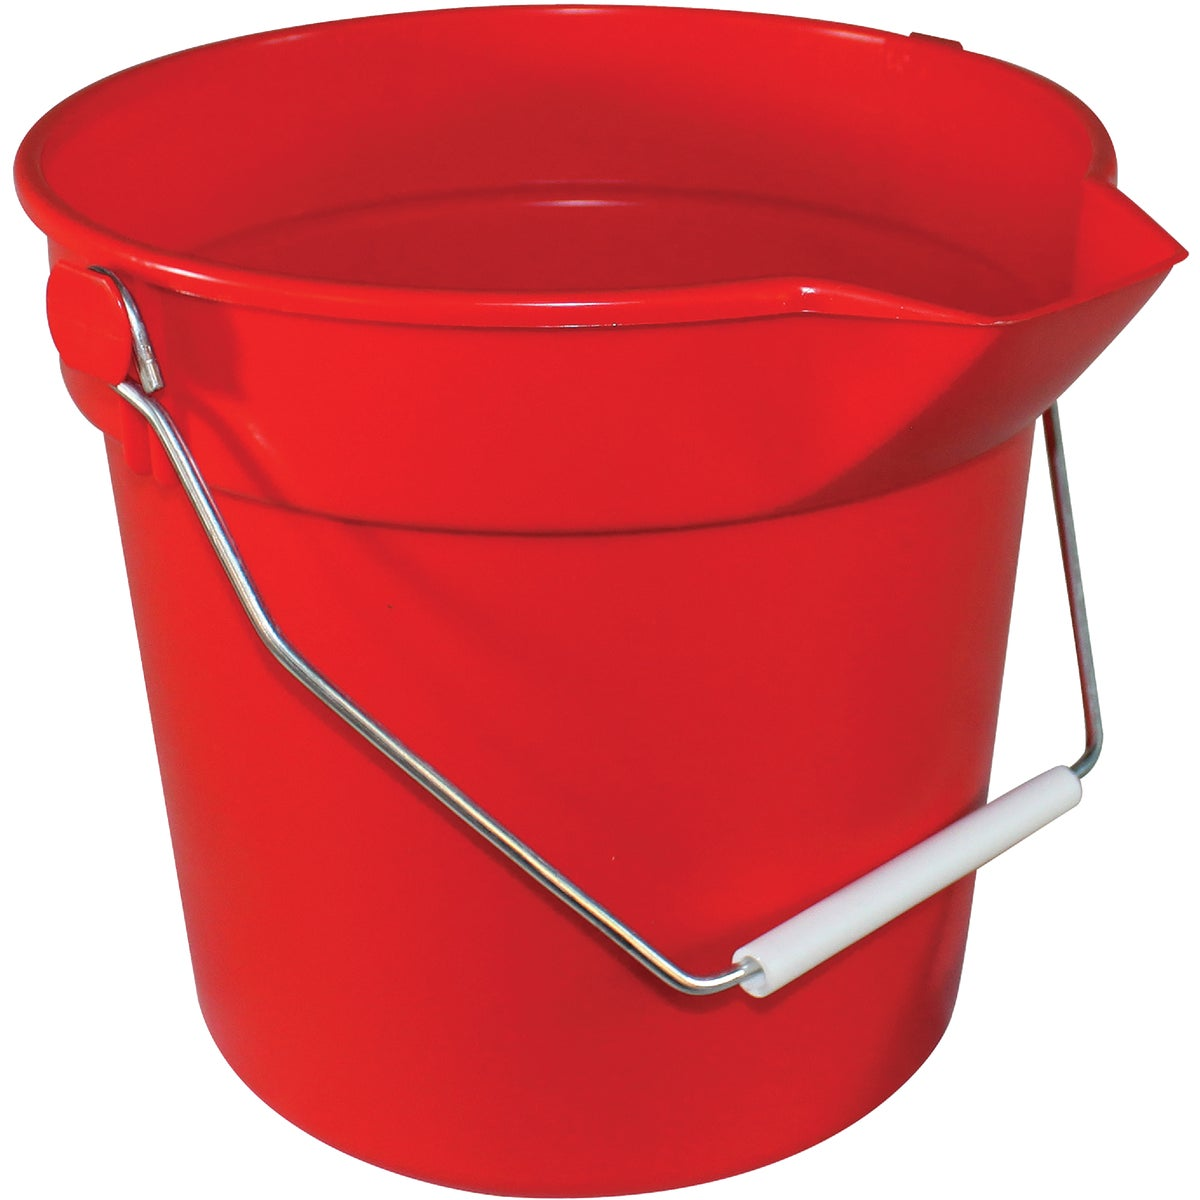 10 QUART RED BUCKET - FG296300RED by Rubbermaid Comm Prod